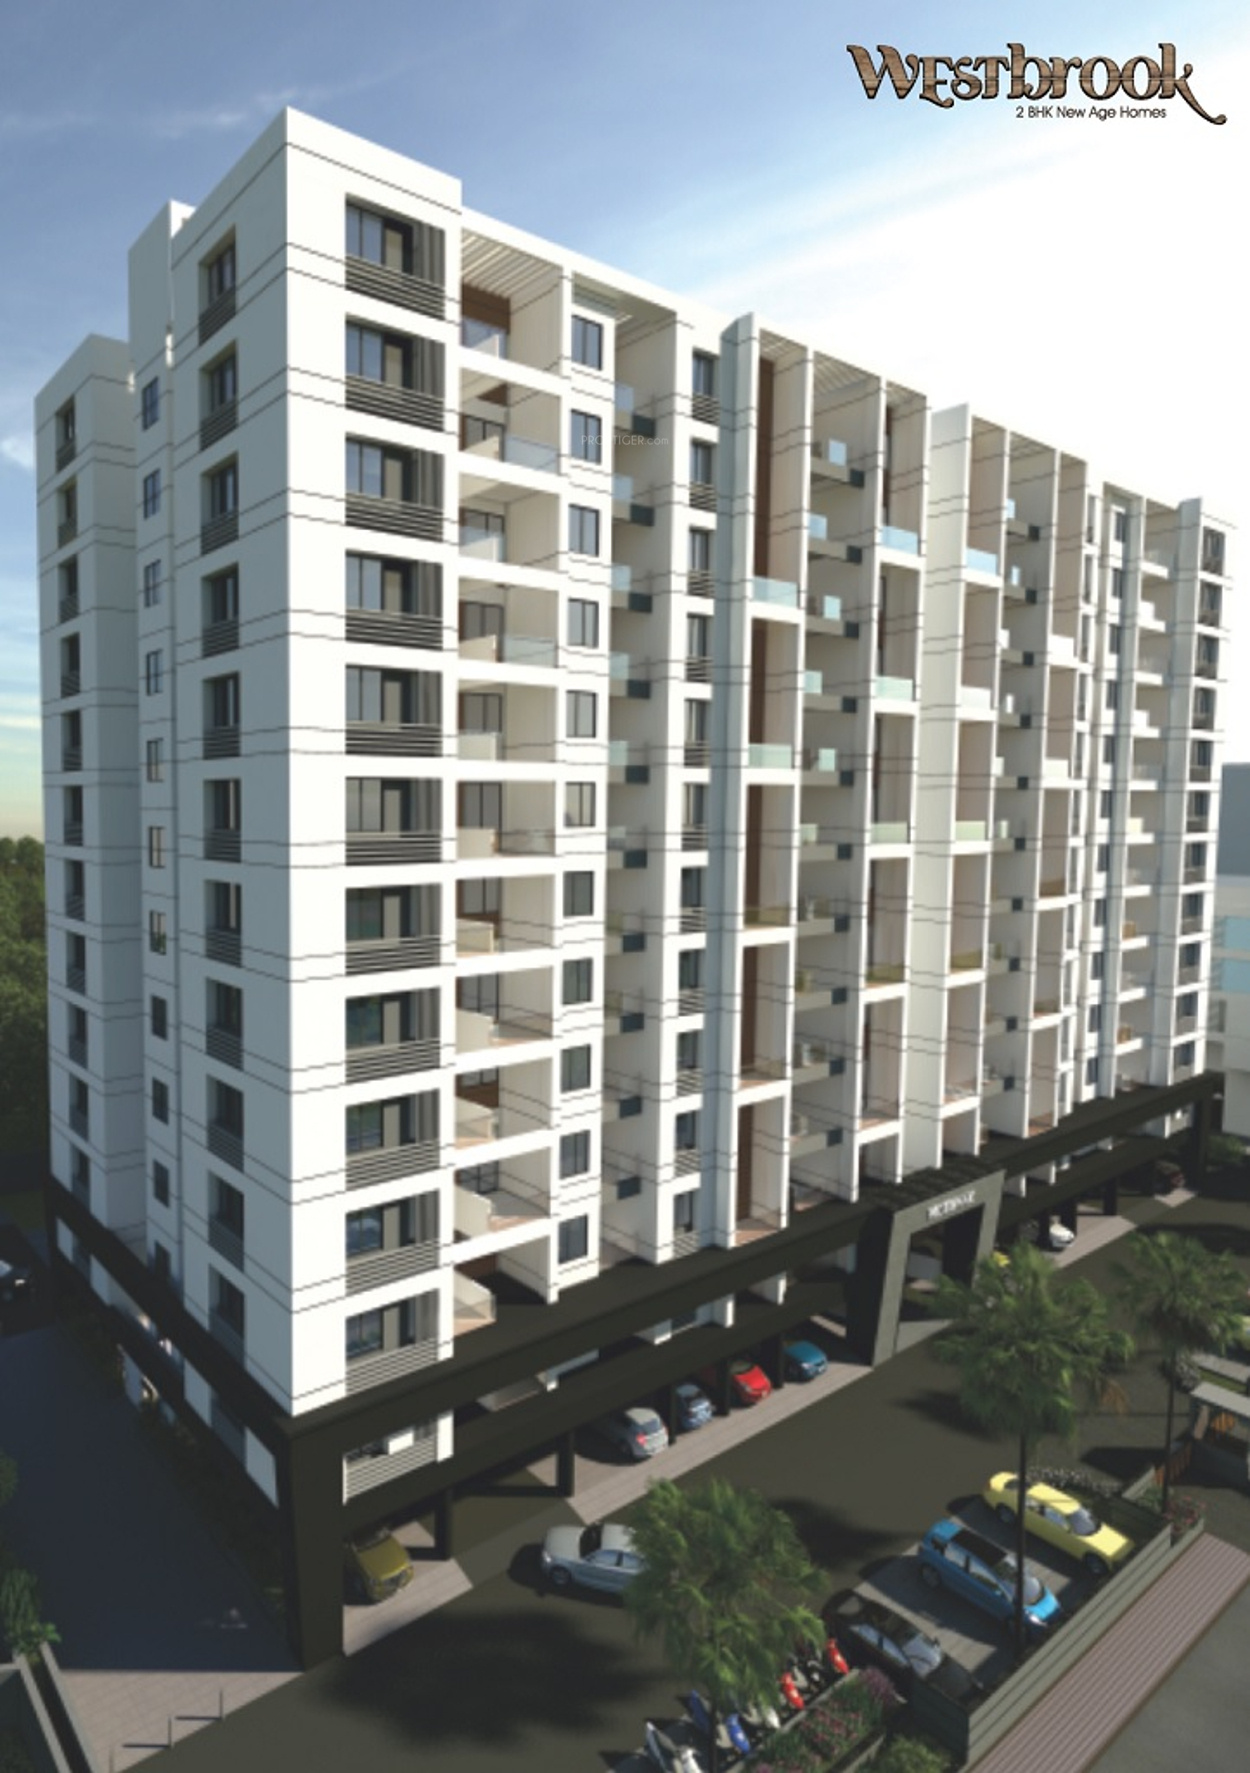 tara group westbrook in ambegaon budruk pune price location tara group westbrook in ambegaon budruk pune price location map floor plan reviews proptiger com